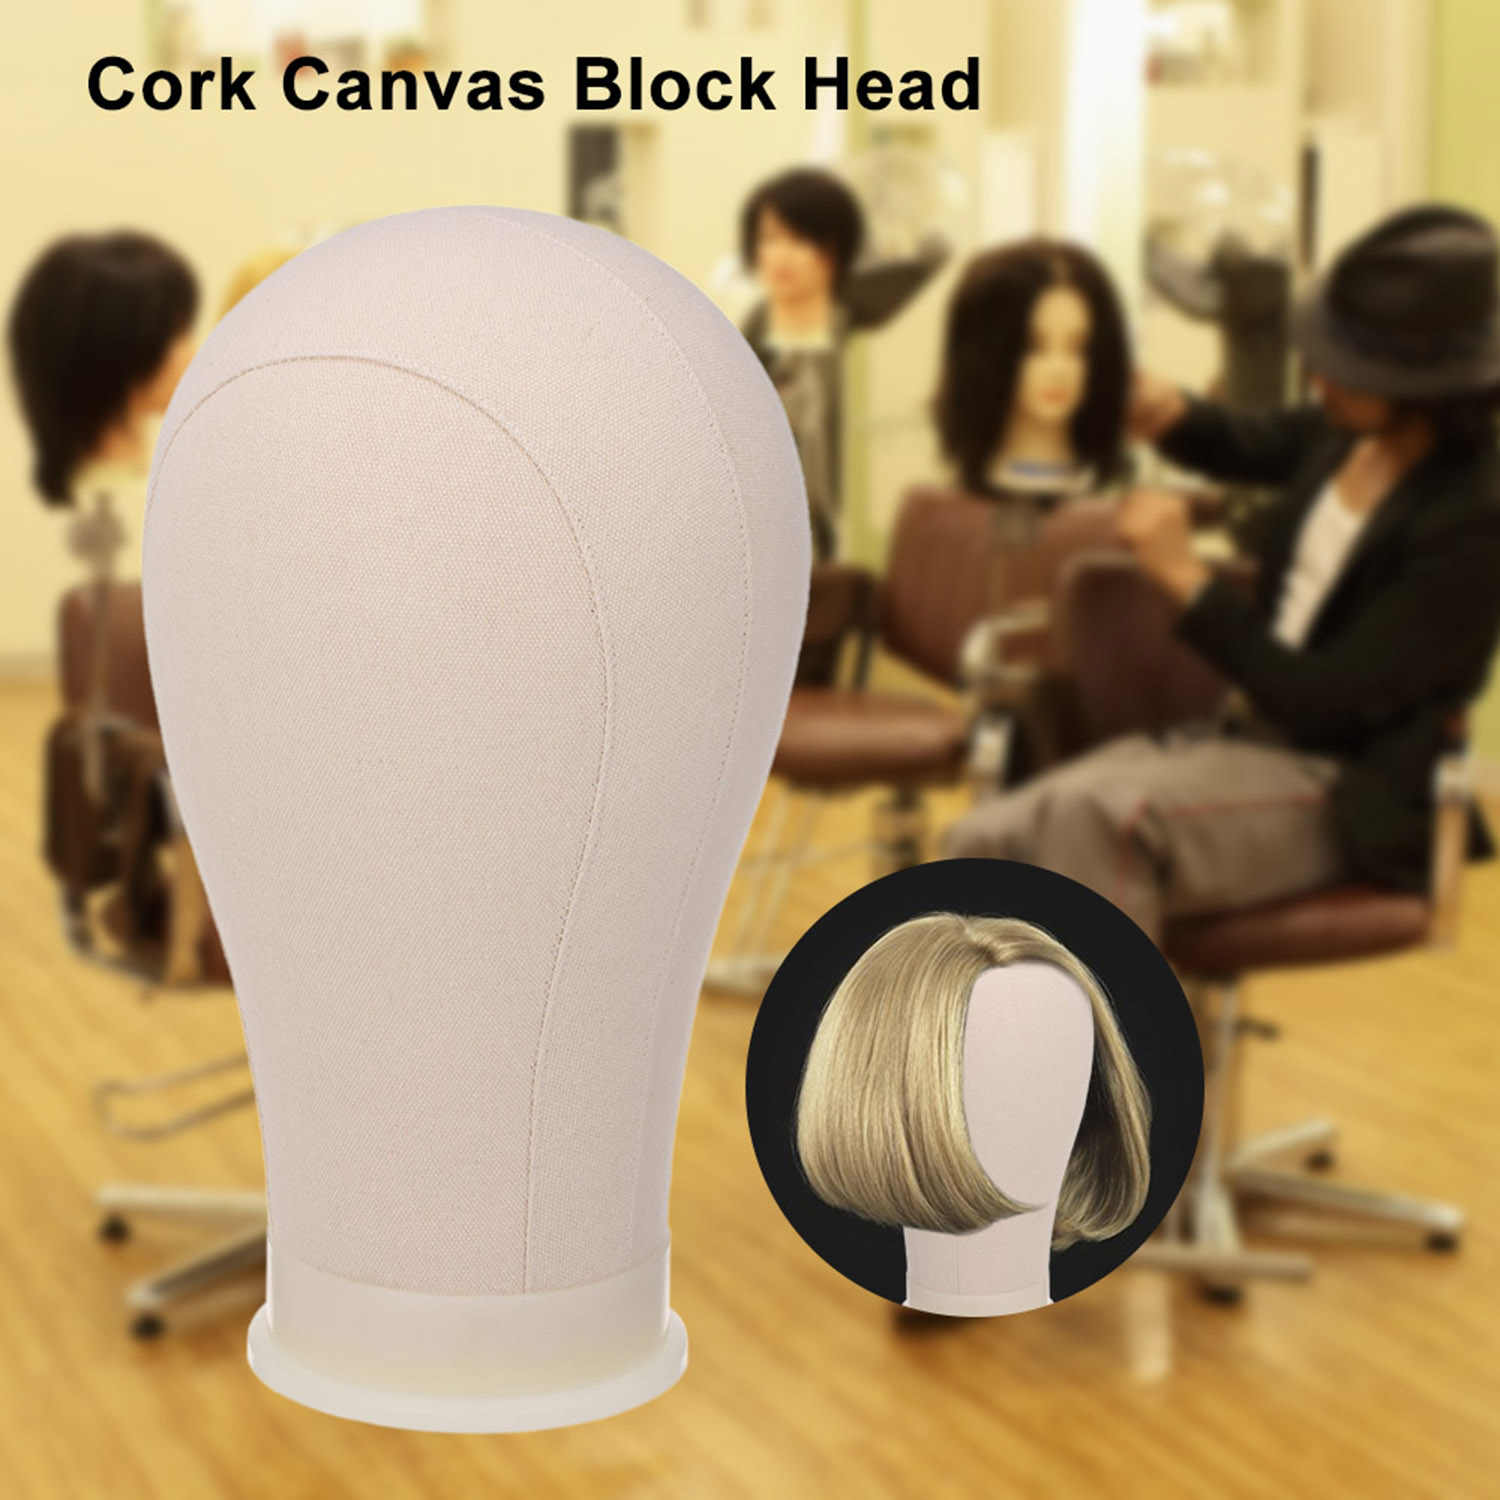 """21"""" Cork Canvas Block Head Mannequin Head Wig Hair Styling Hat Wig Display Stand Mannequin Manikin Head Model with 6 Tpins"""